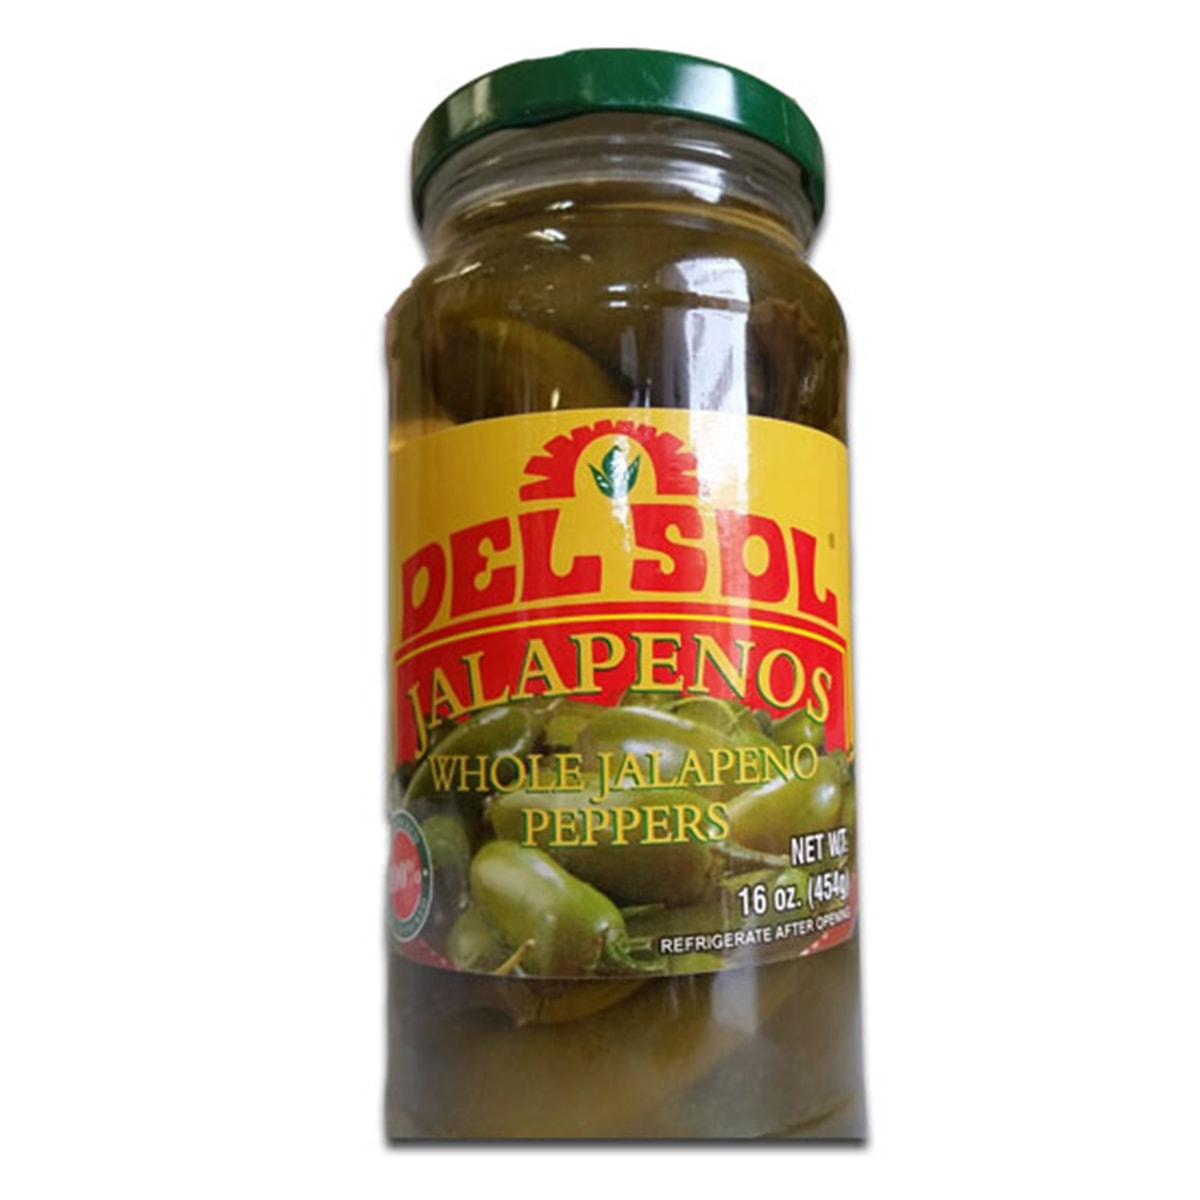 Buy Del Sol Jalapenos (Whole Jalapeno Peppers) - 454 gm